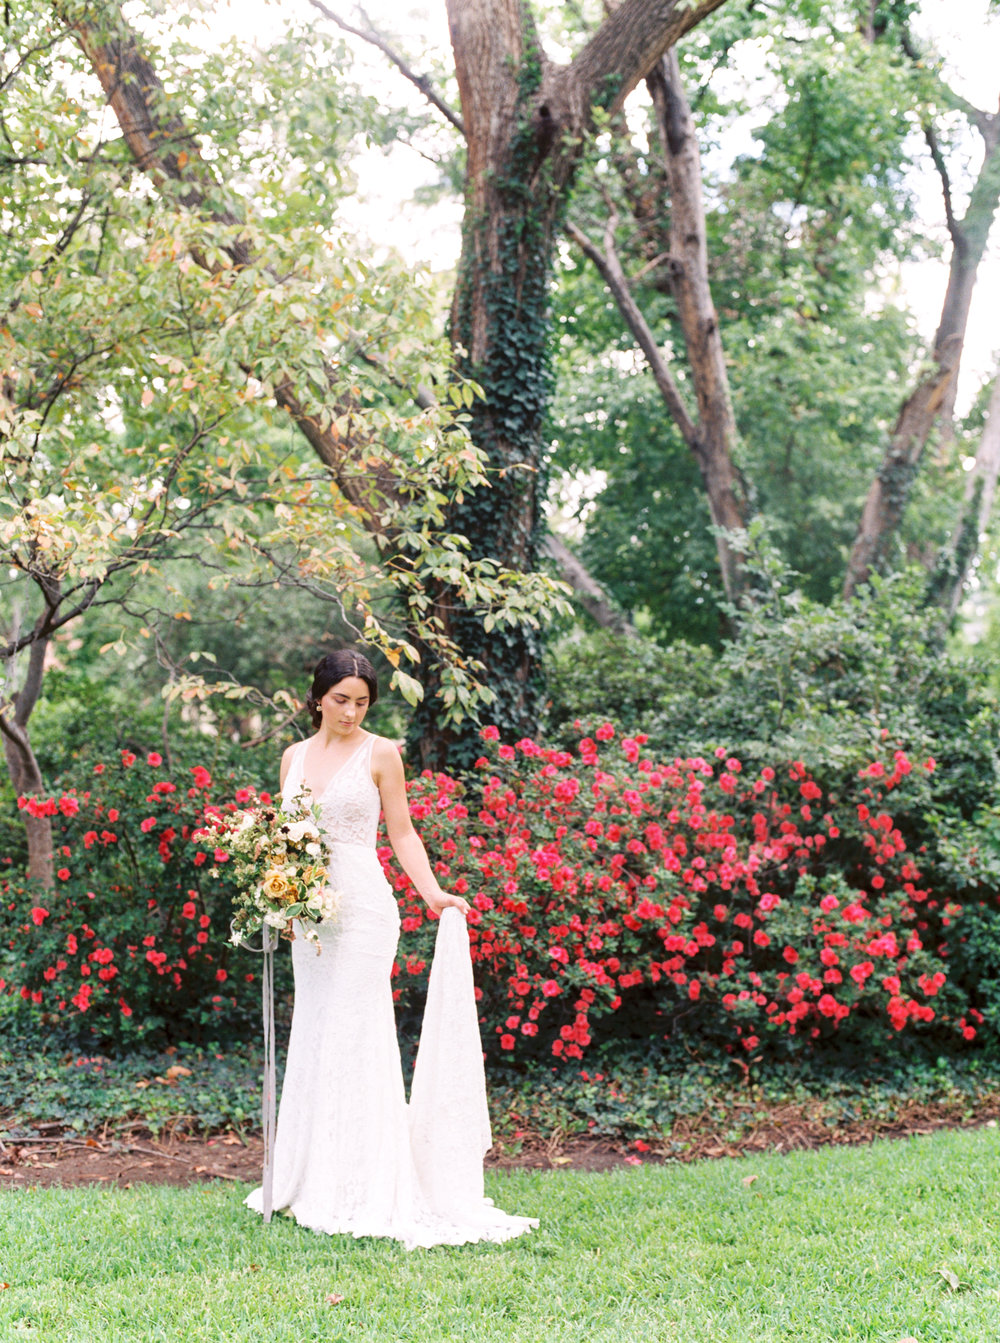 Callie Manion Photography_Garden Wedding Inspiration_061.jpg